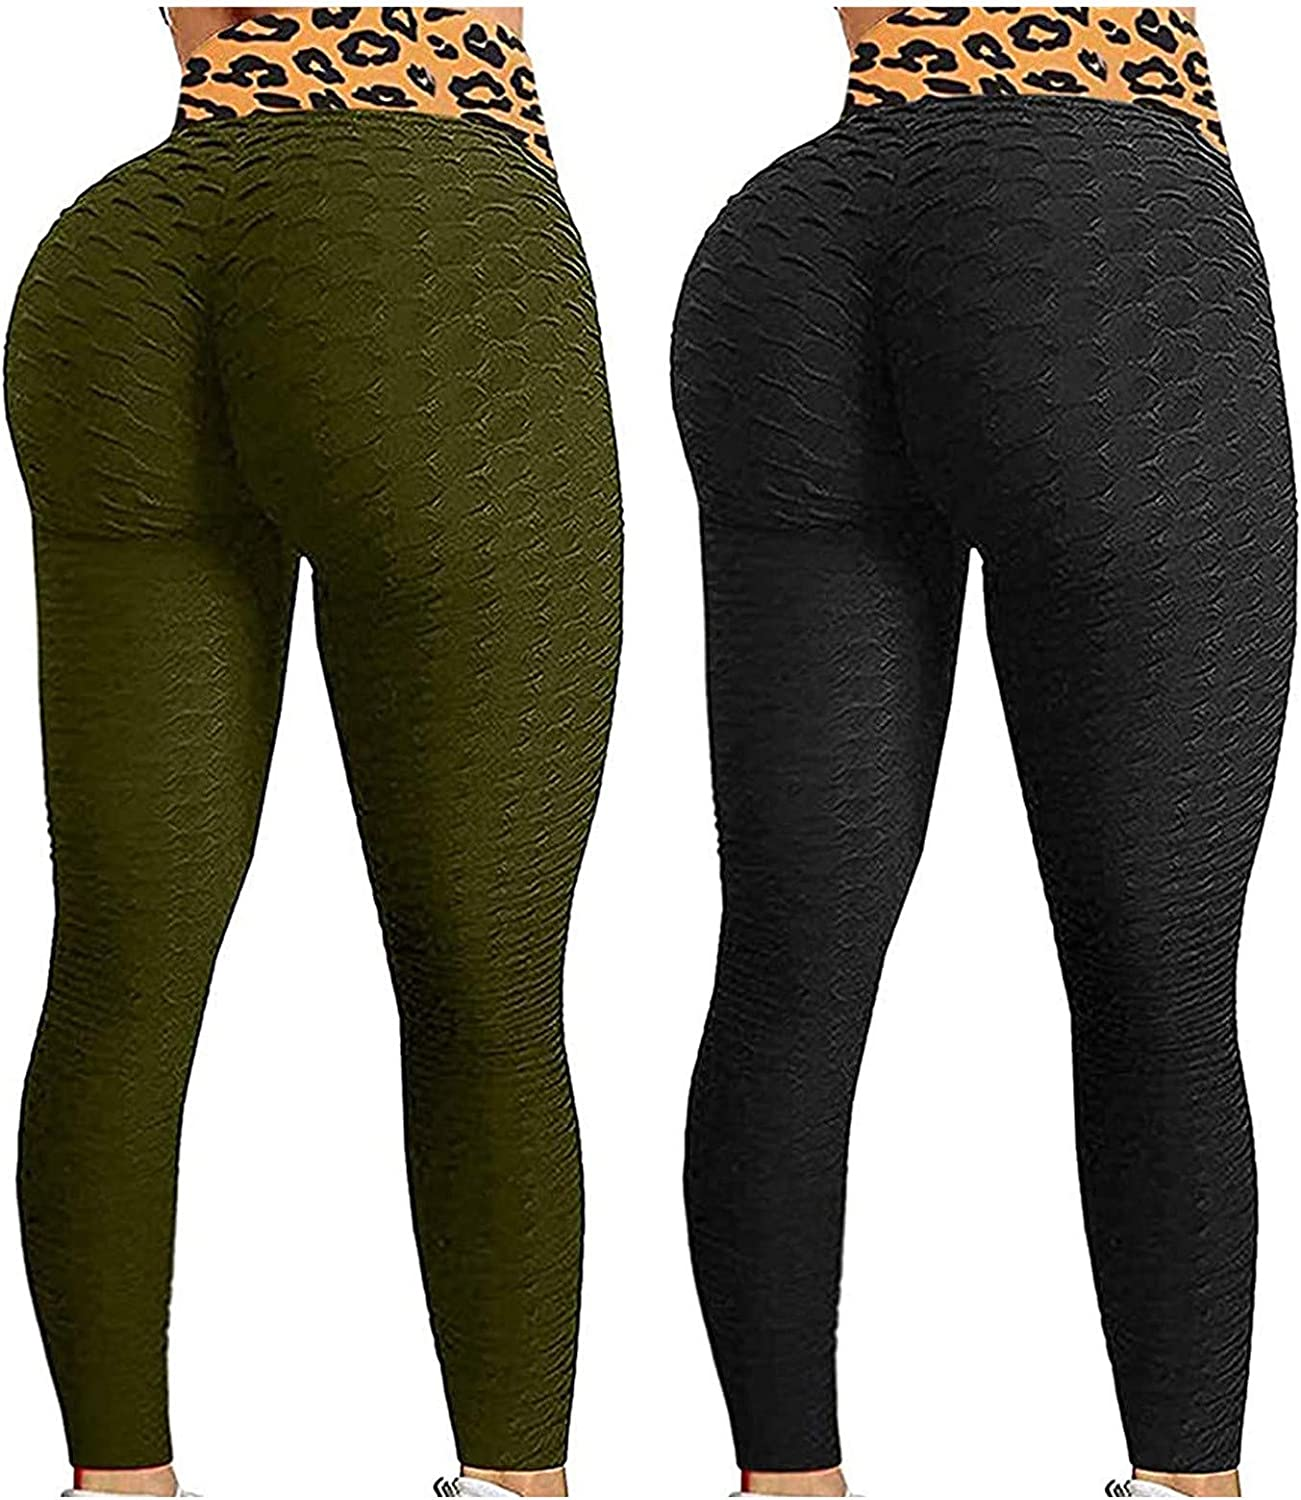 2 Pack Peach Lift Leggings for Women,Butt Lift Leggings for Women Workout Yoga Pants Ruched Booty High Waist Seamless Leggings Compression Tights